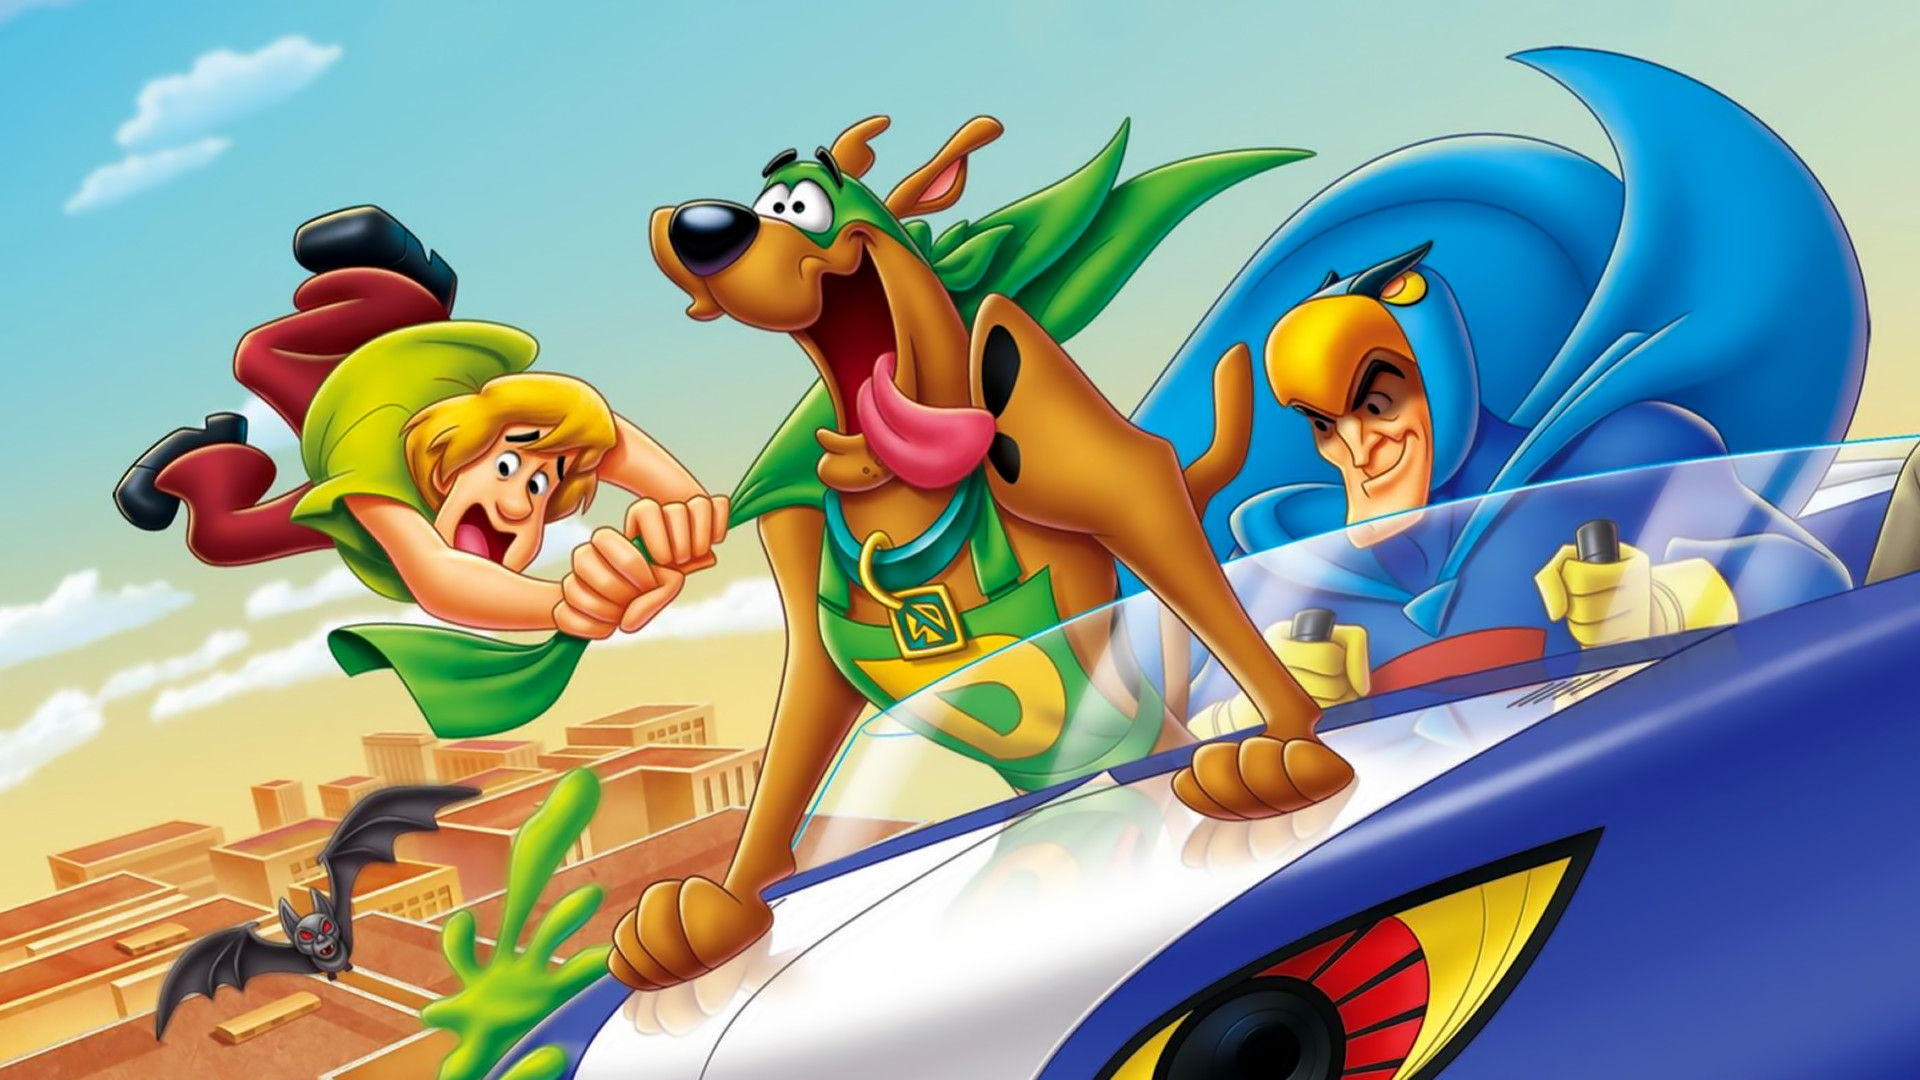 Scooby Doo Movie Cartoon Hd Wallpaper Image For Iphone: 6 Scooby-Doo! Mask Of The Blue Falcon HD Wallpapers